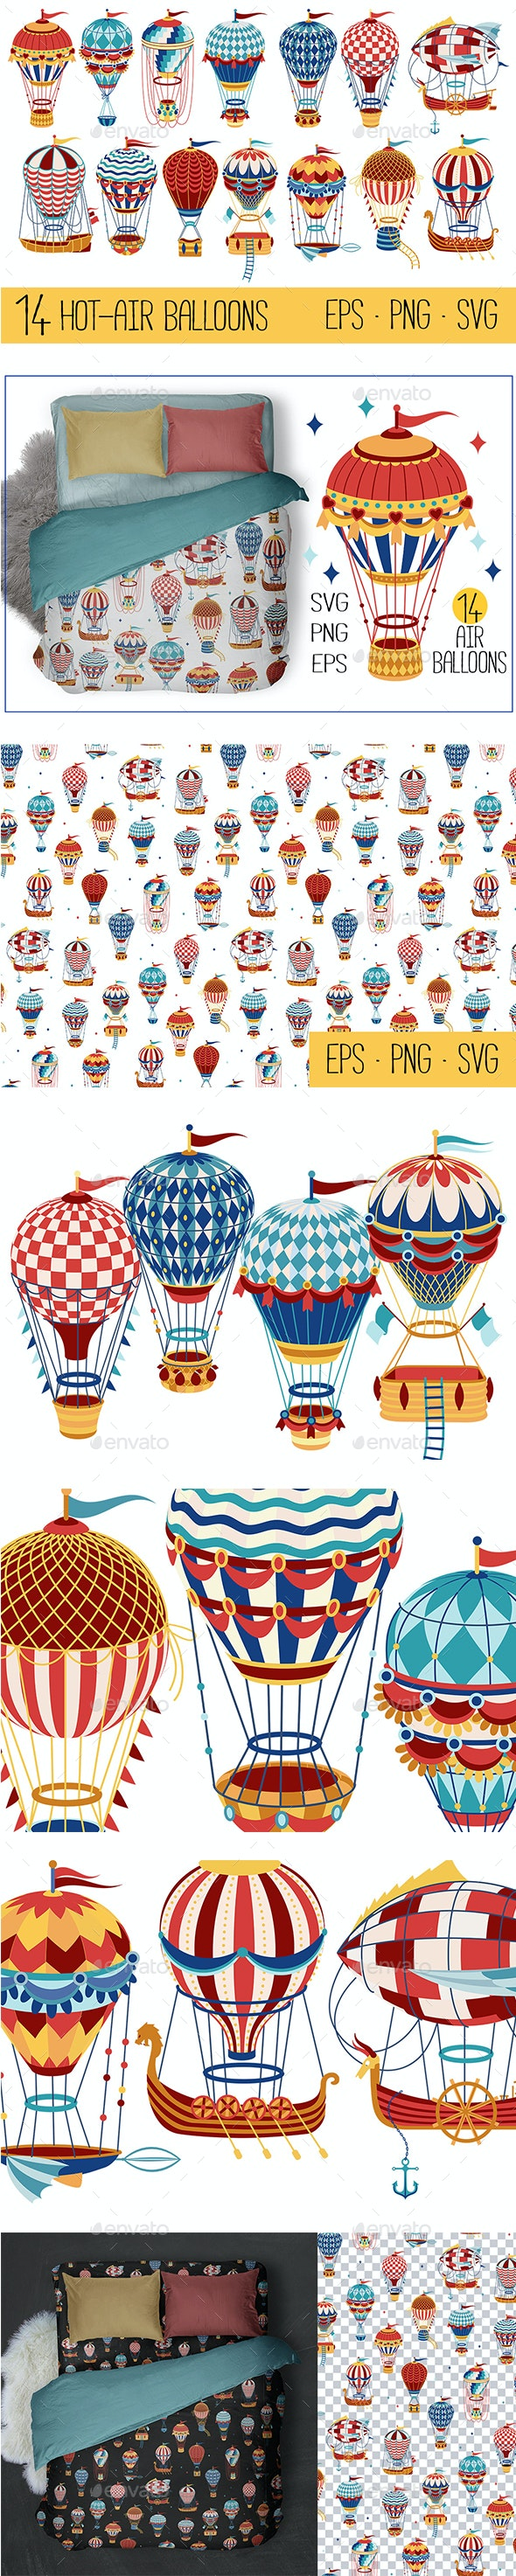 Vintage Hot Air Balloon Collection - Man-made Objects Objects